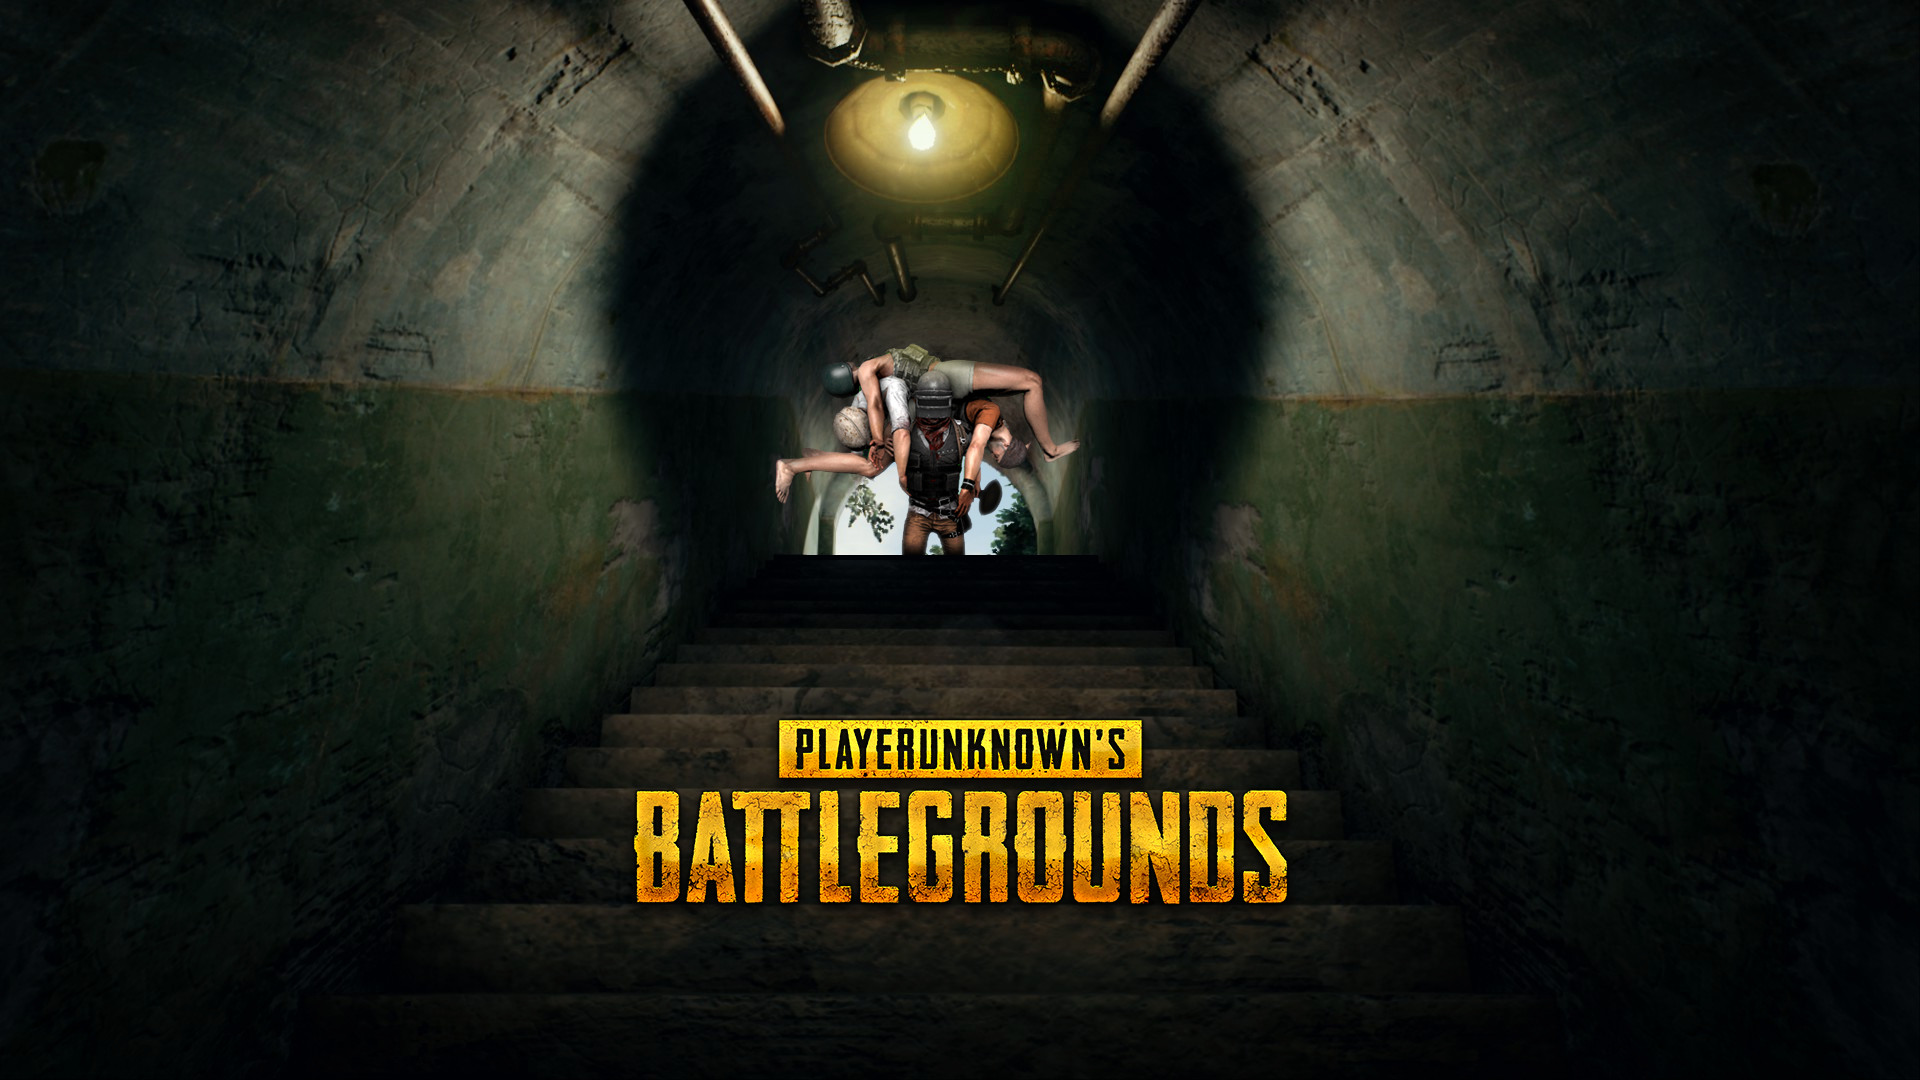 Pubg Hd Wallpapers Free Download For Desktop Pc: PUBG: Microsoft Gibt Weitere Details Bekannt